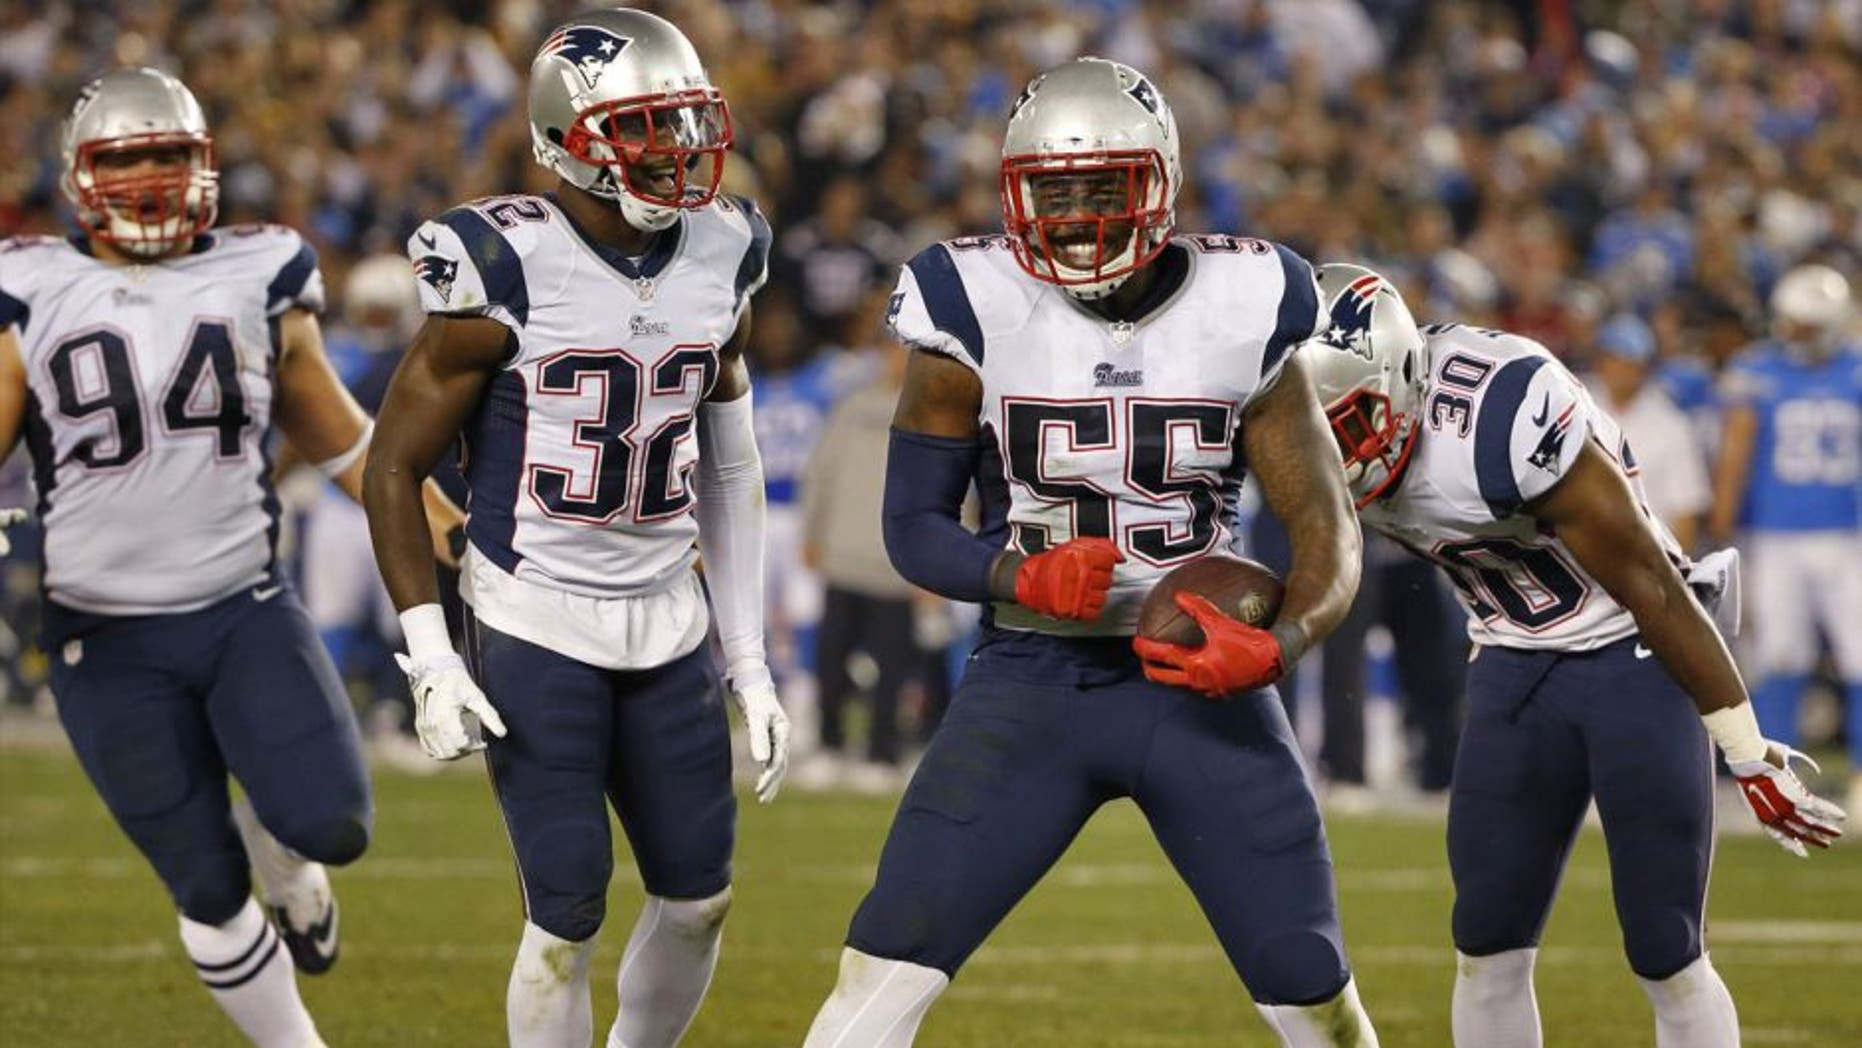 New England Patriots outside linebacker Akeem Ayers (55) celebrates his interception against the San Diego Chargers during the second half in an NFL football game Sunday, Dec. 7, 2014, in San Diego. (AP Photo/Lenny Ignelzi)